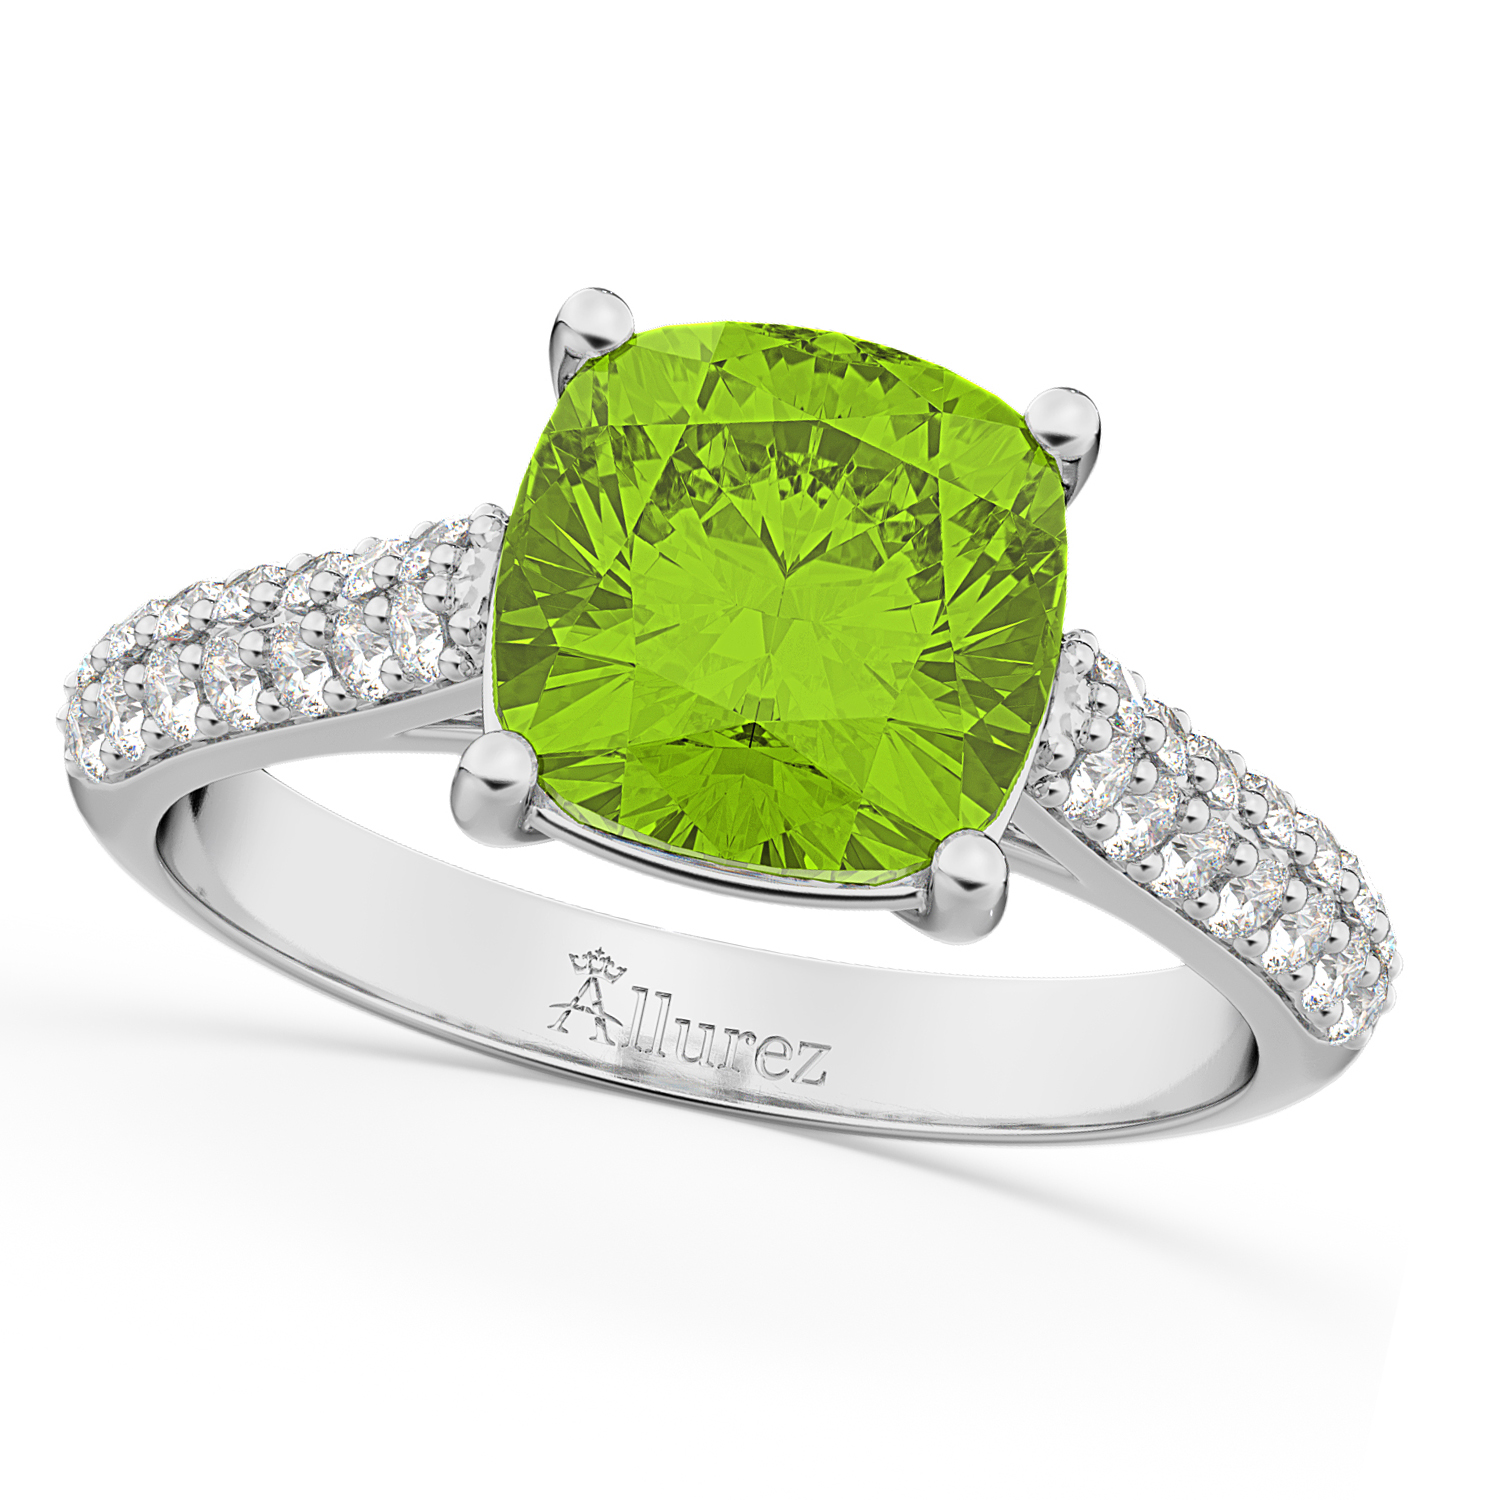 cushion faberg shop faberge editor jewellery ring scale devotion cut upscale emerald product subsampling crop the false